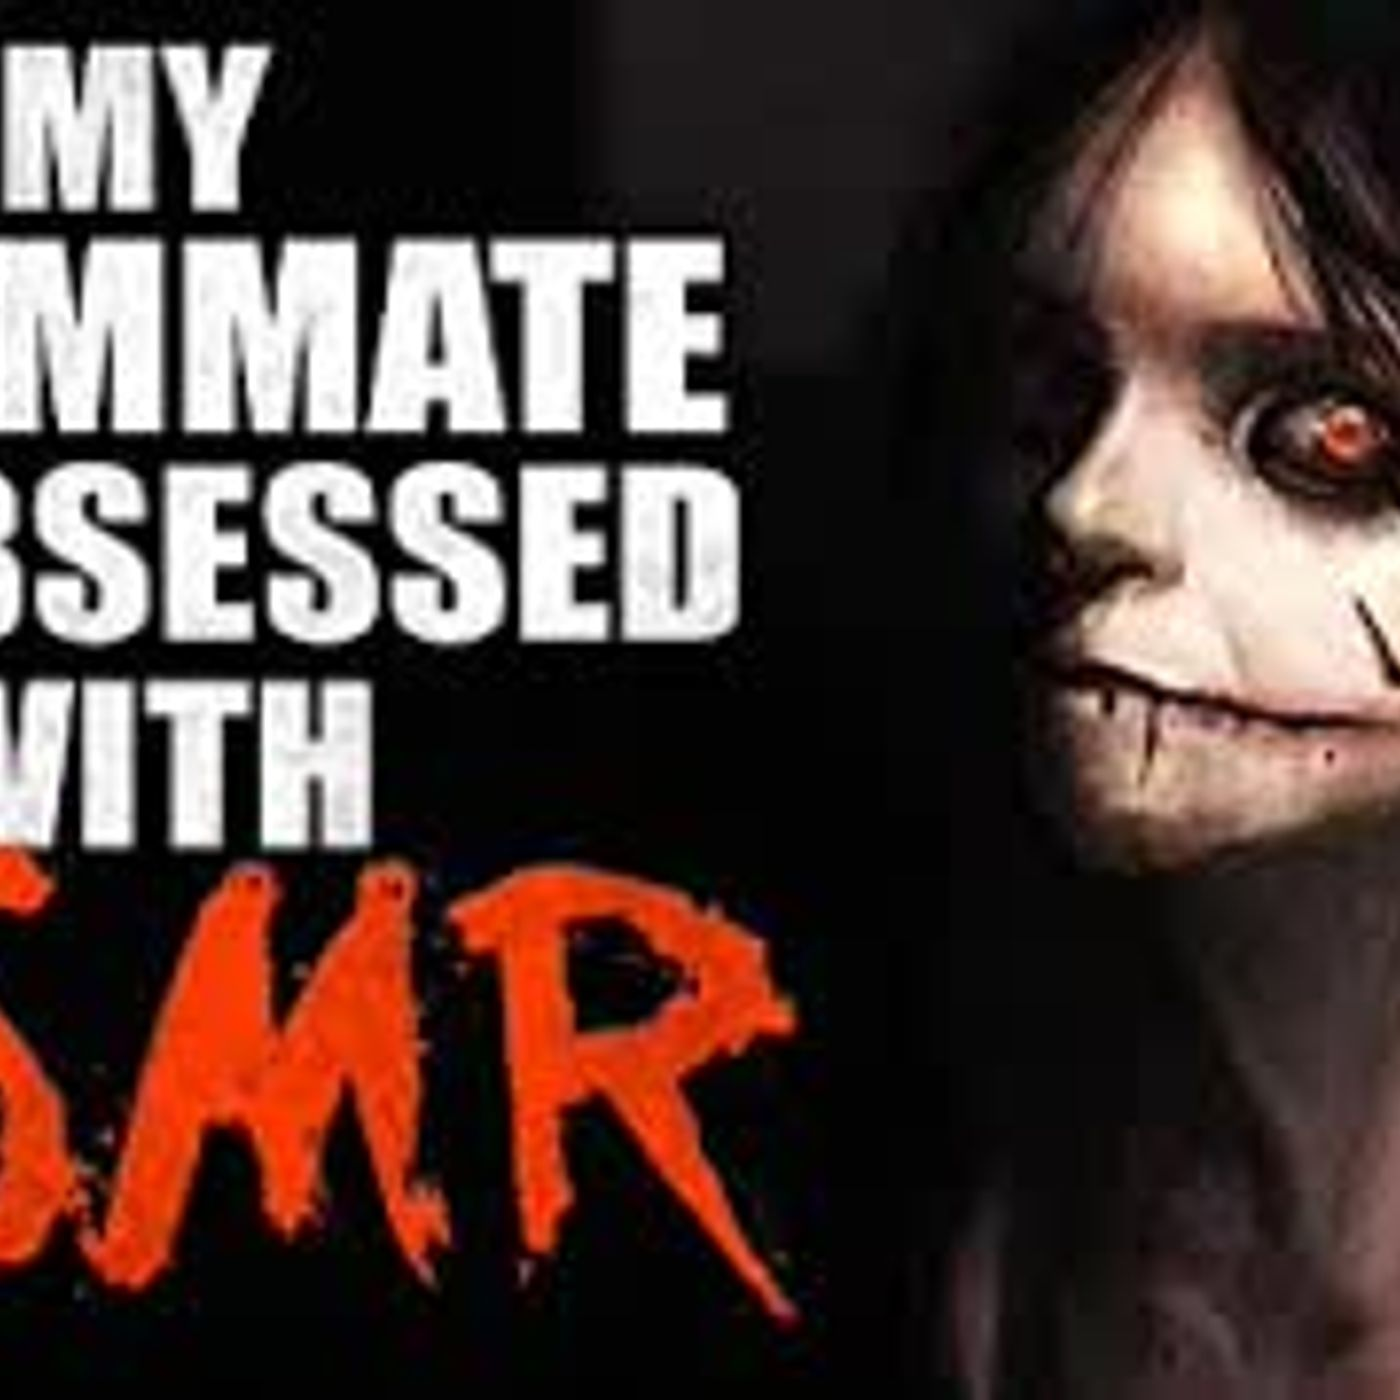 """My roommate is obsessed with ASMR is illegal"" Creepypasta"